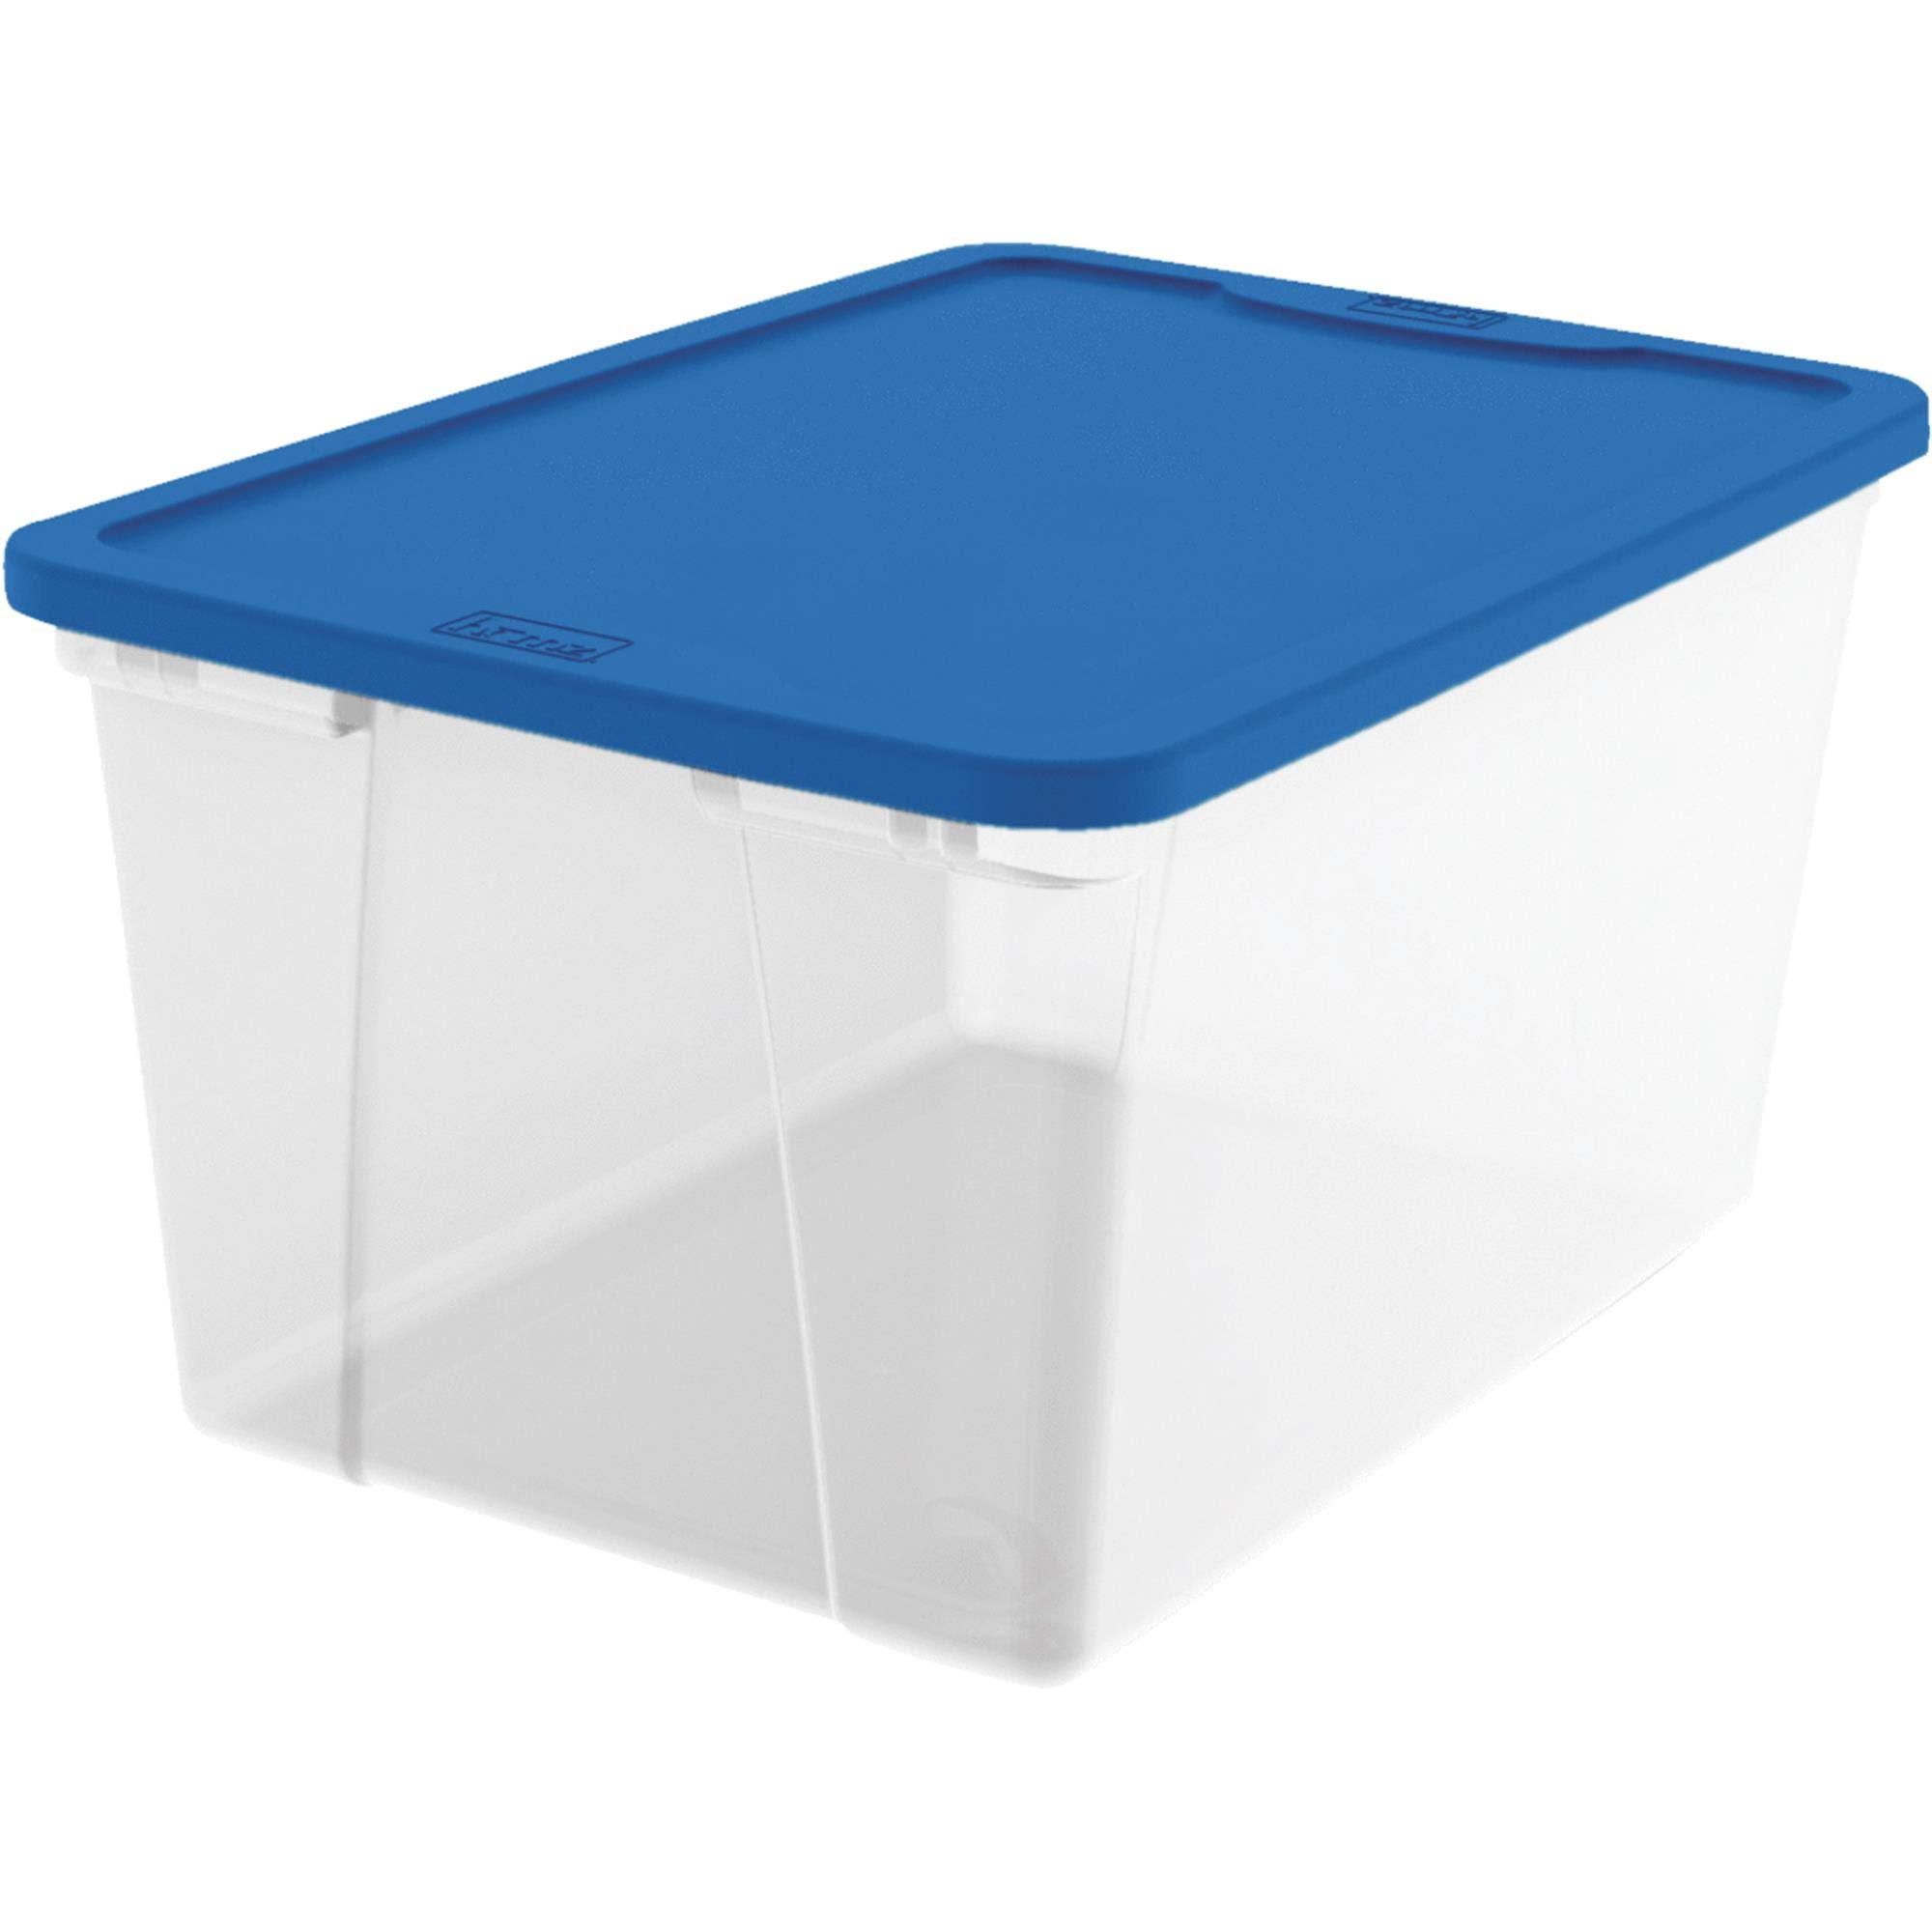 Homz Products/Storage 3264CLBL.06 64 Quart Clear Storage Tote